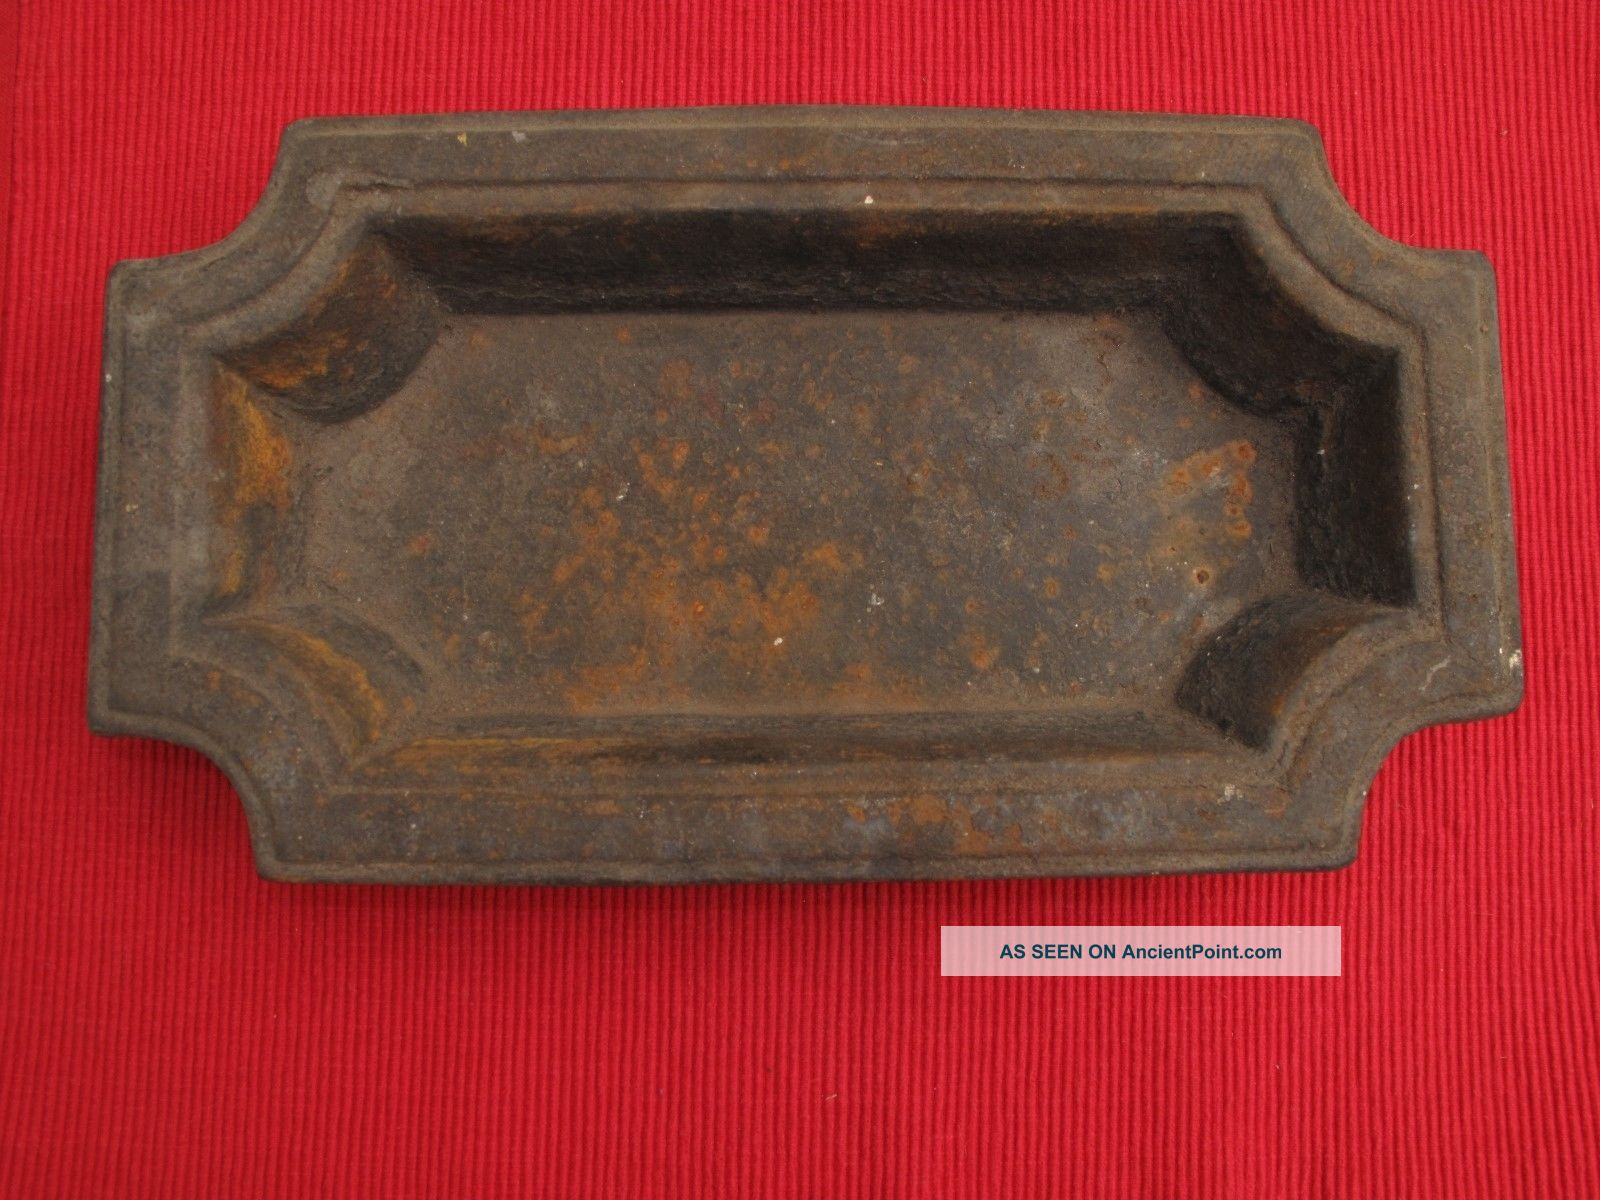 Antique Cast Iron Victorian Hall Tree Umbrella Stand Insert Tray Loaf Pan 1800-1899 photo